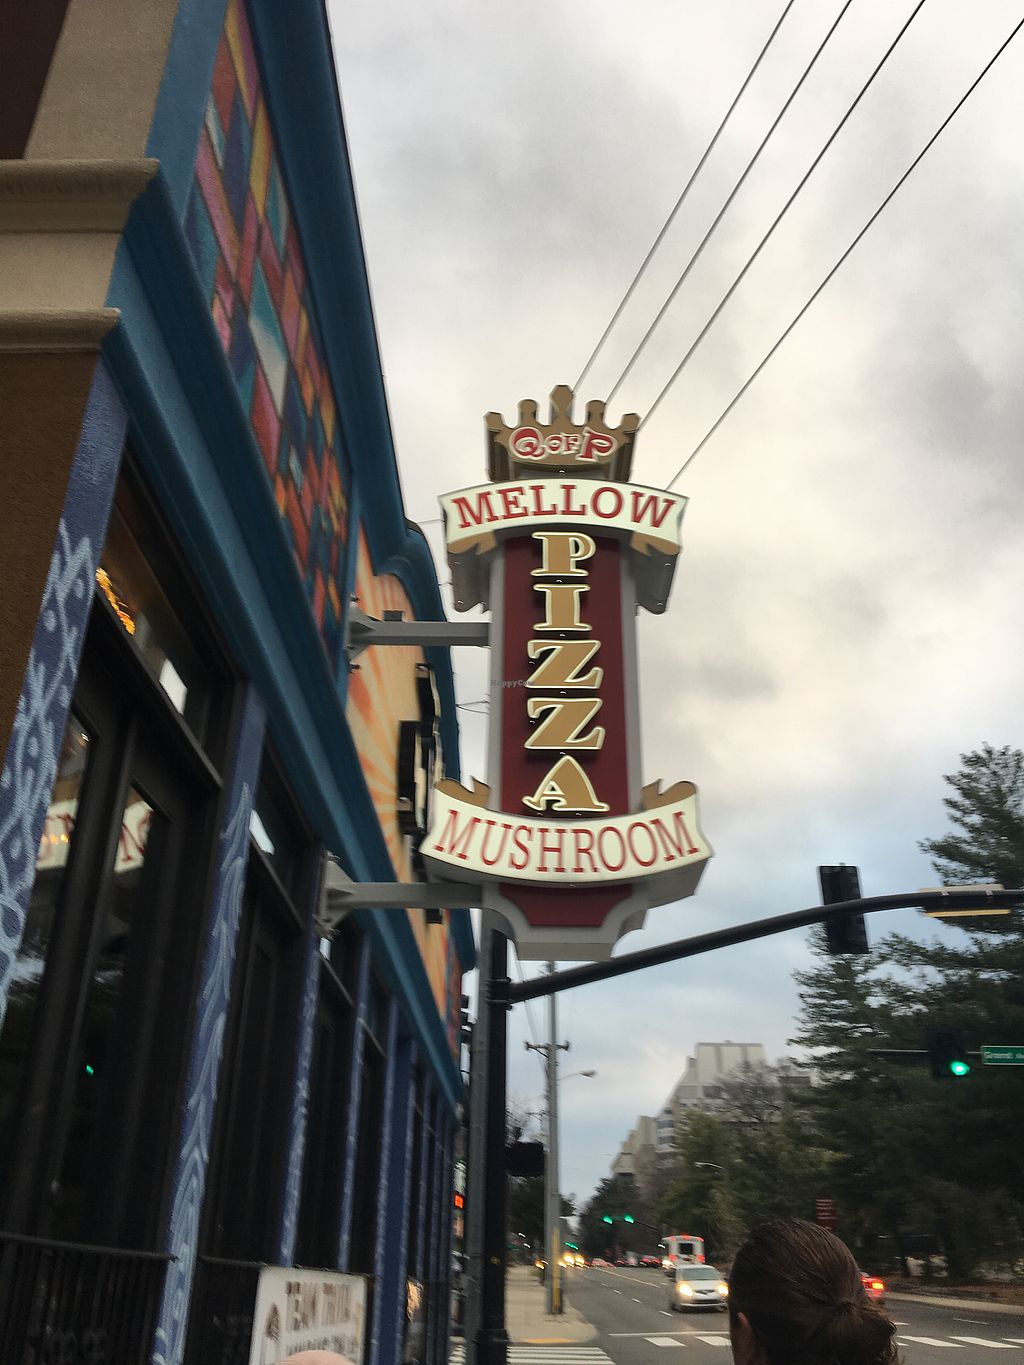 "Photo of Mellow Mushroom - 21 St Ave  by <a href=""/members/profile/Thepennsyltuckyvegan"">Thepennsyltuckyvegan</a> <br/>Storefront <br/> March 16, 2018  - <a href='/contact/abuse/image/27302/371474'>Report</a>"